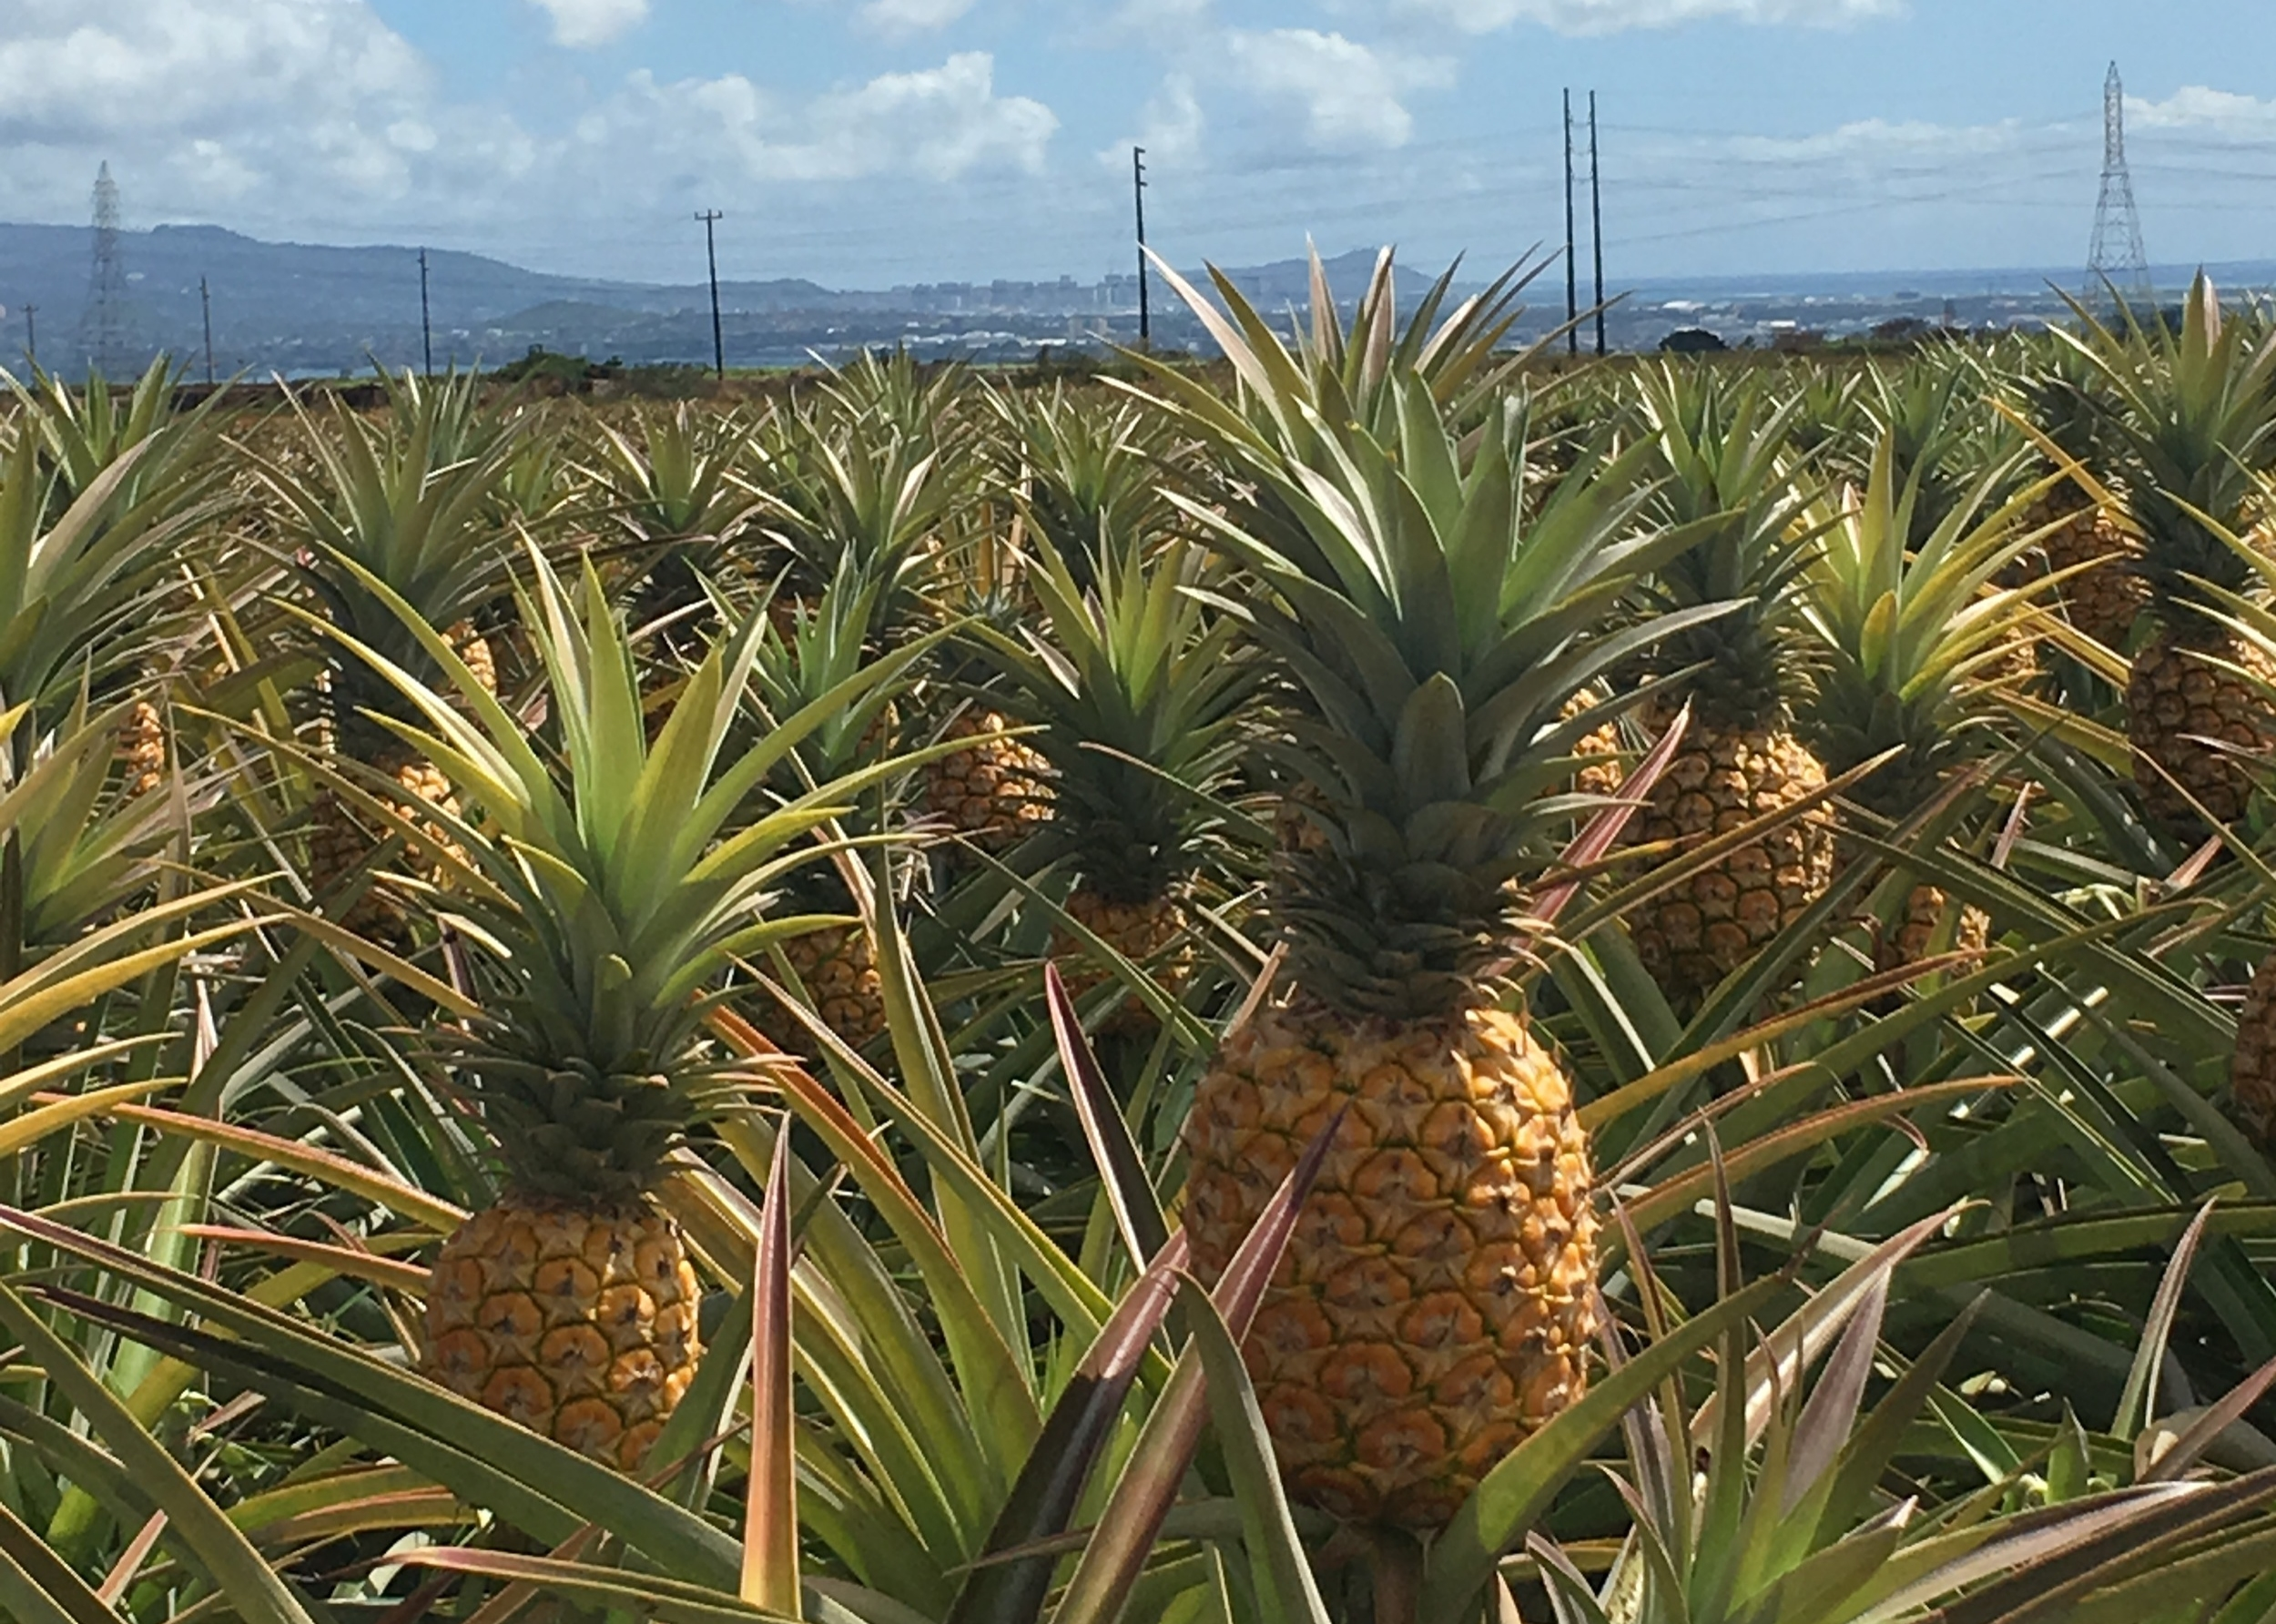 A field of Hawaiian Crown pineapples ready to be harvested. - Photo by Craig Bowden